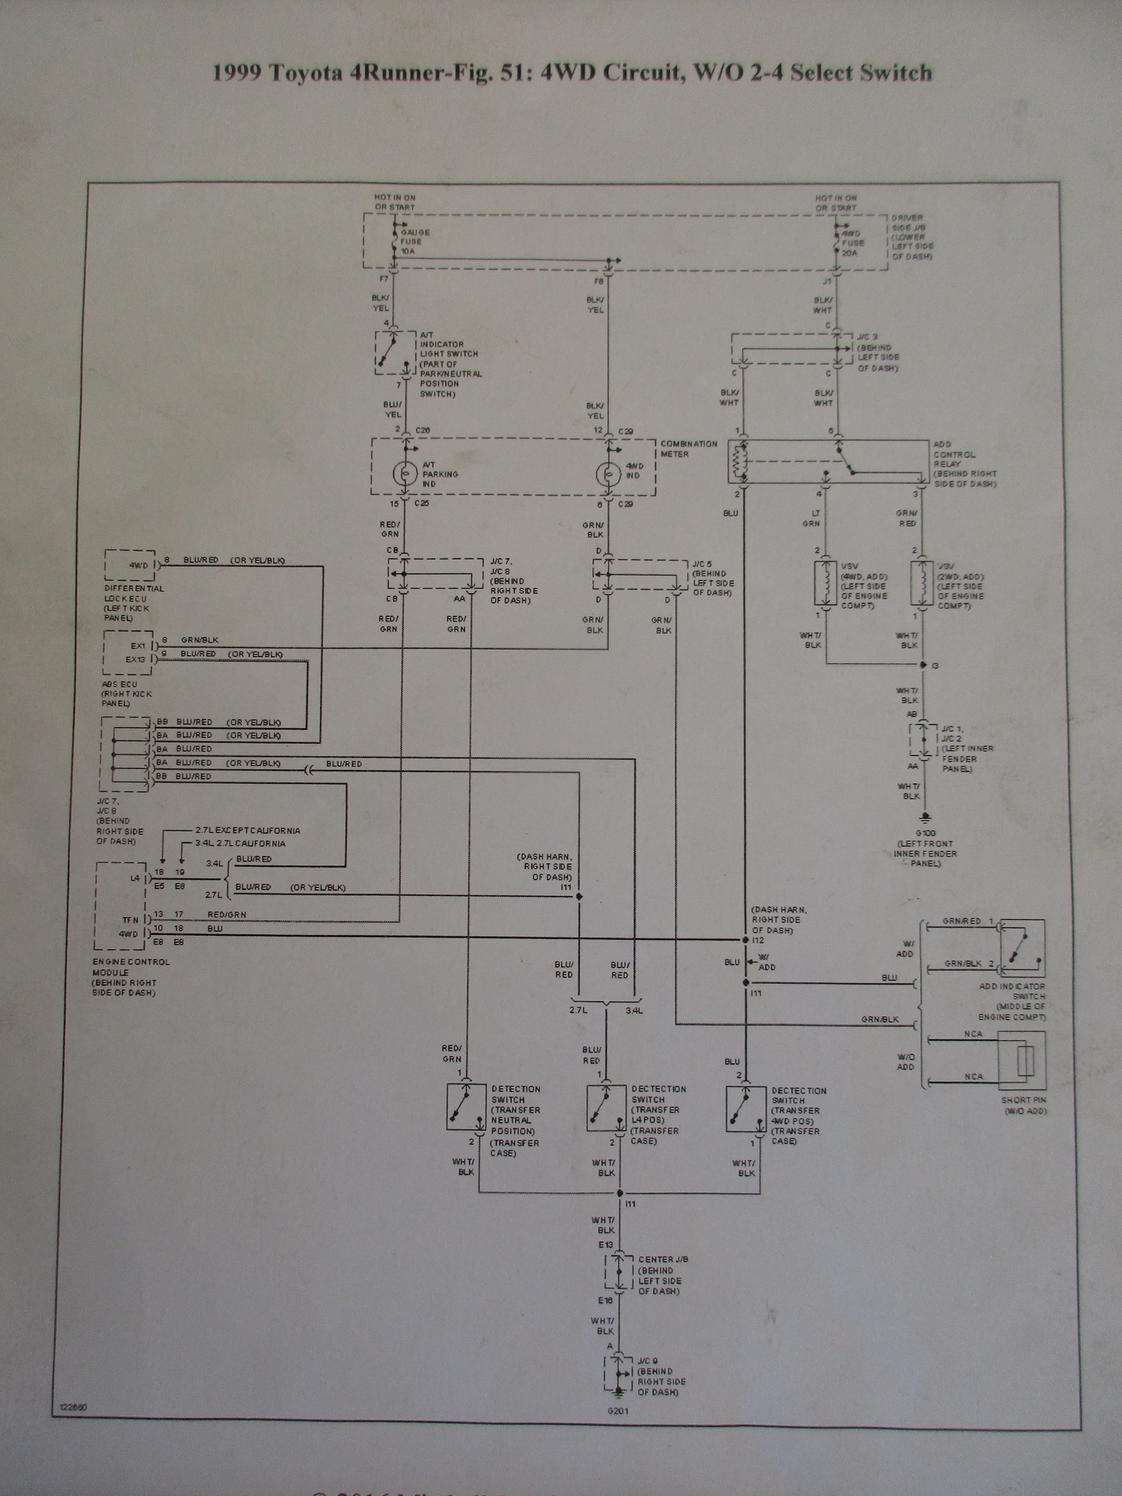 1999 4runner 4wd Circuit Diagram W  O Select Switch